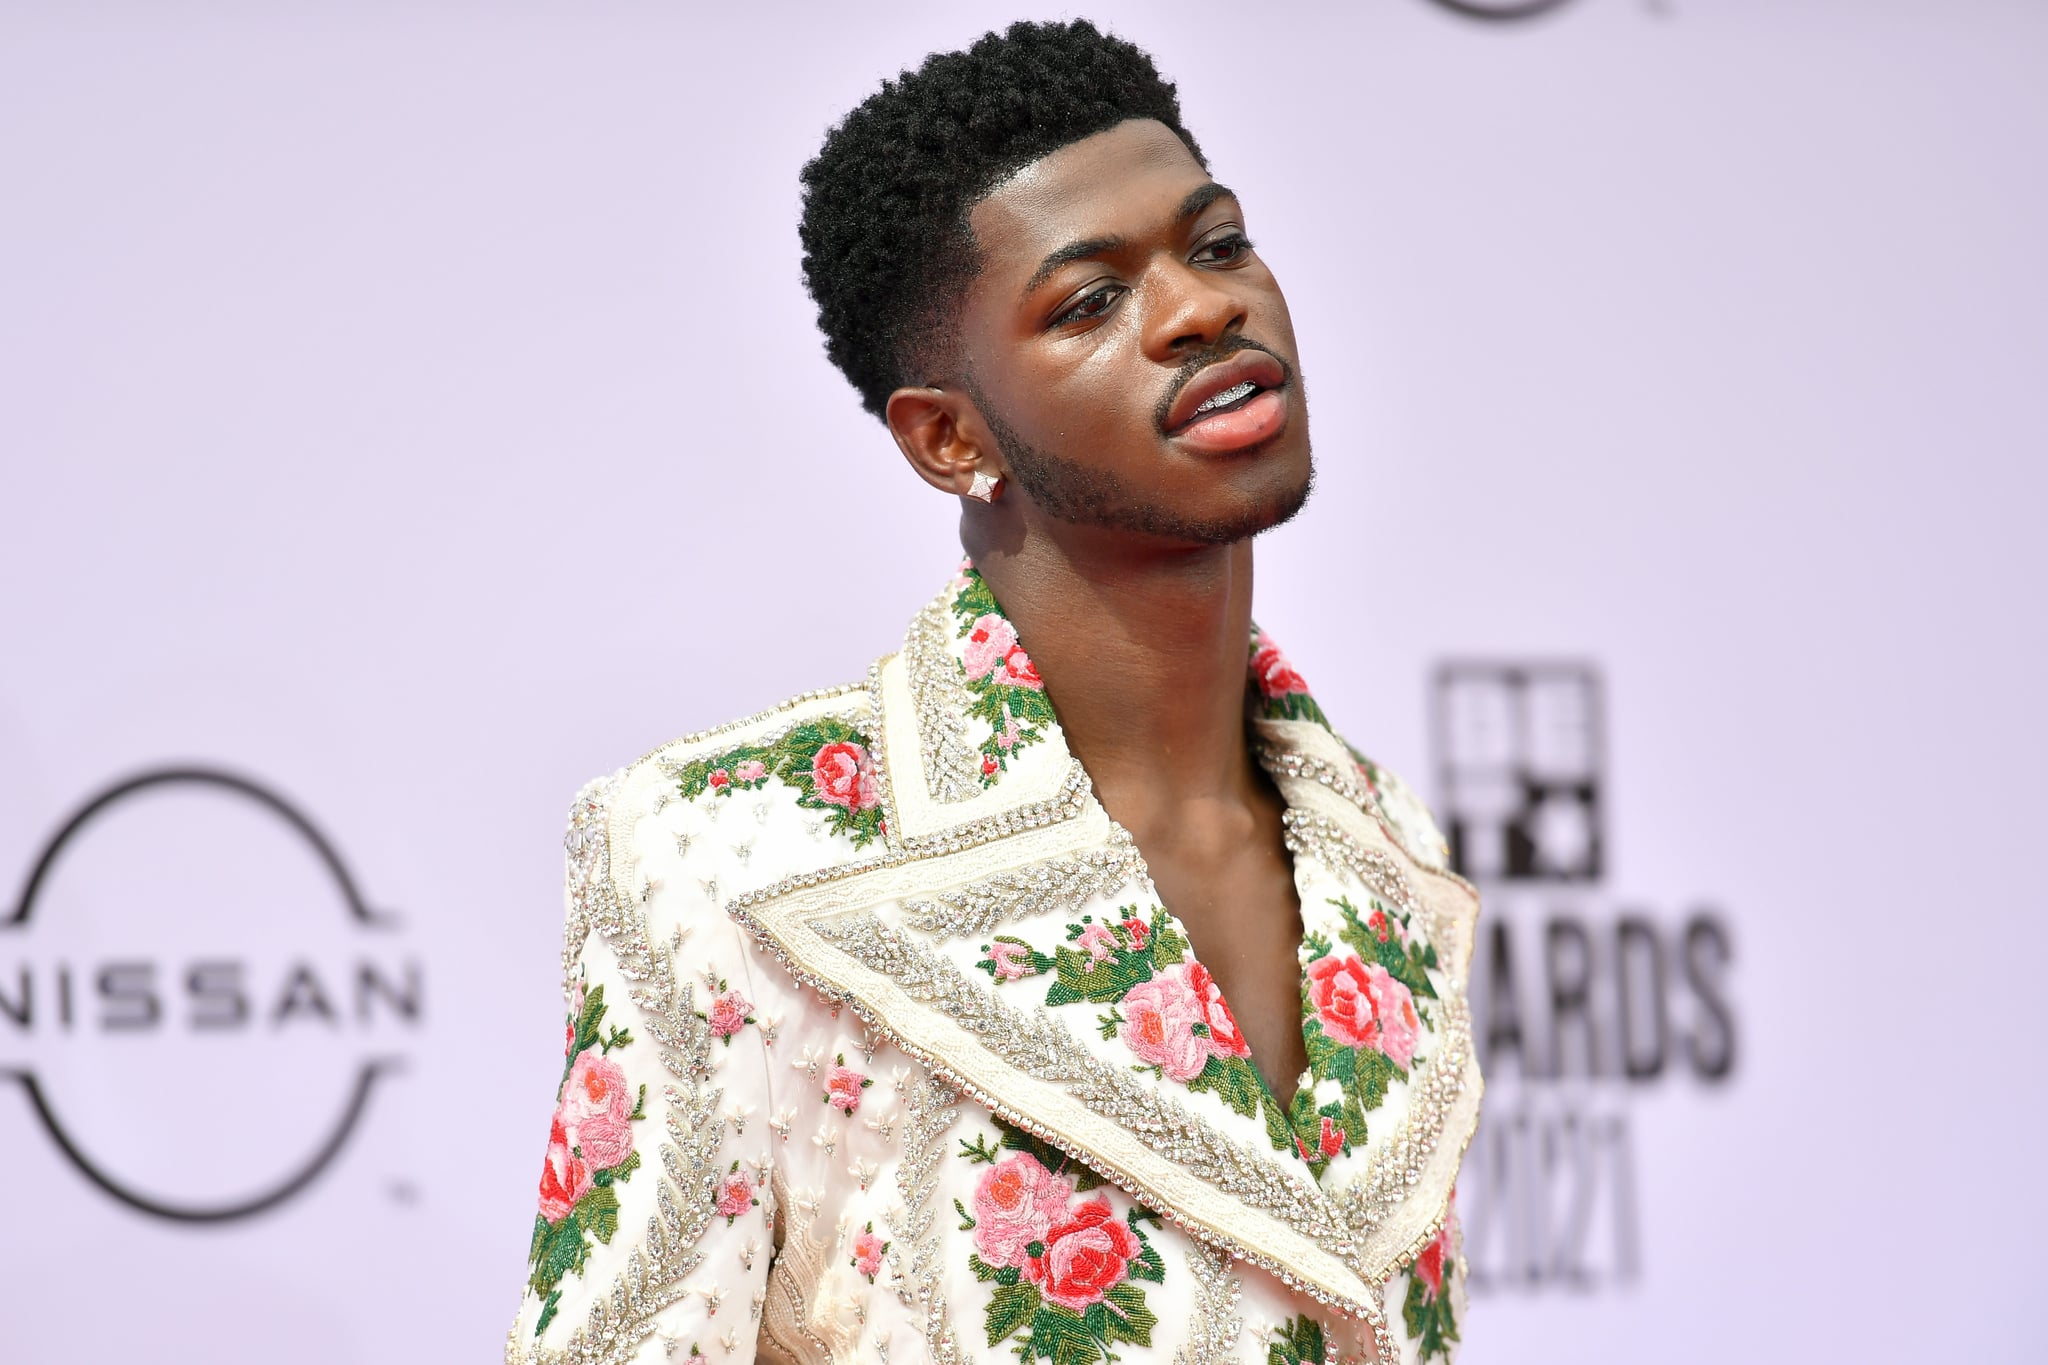 LOS ANGELES, CALIFORNIA - JUNE 27: Lil Nas X attends the BET Awards 2021 at Microsoft Theater on June 27, 2021 in Los Angeles, California. (Photo by Paras Griffin/Getty Images for BET)